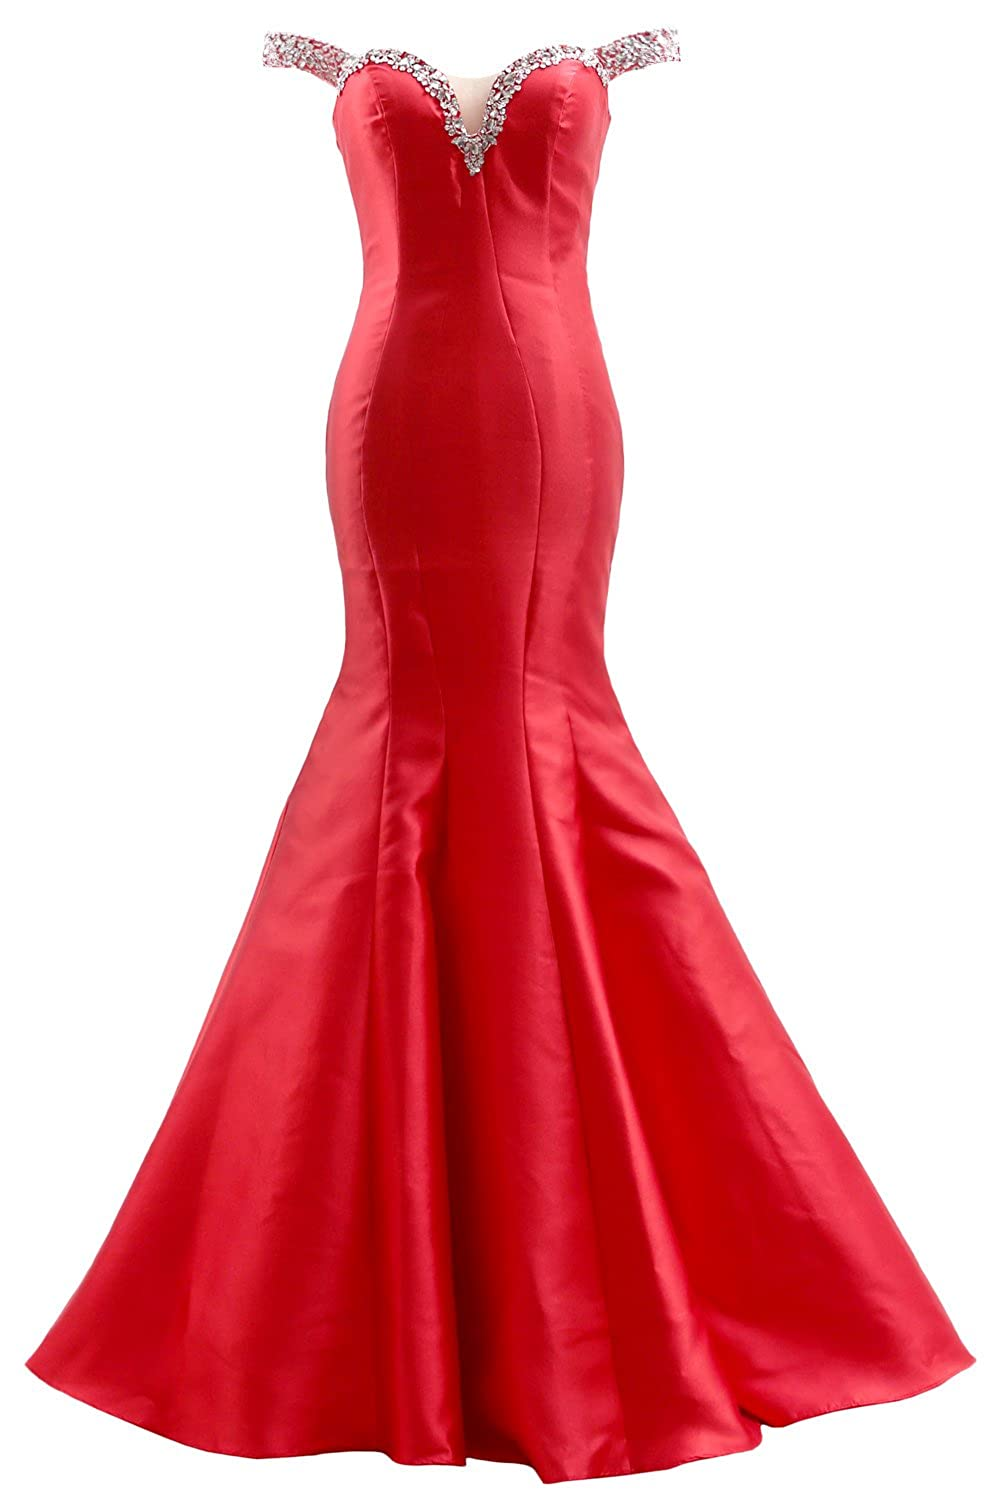 257a6ac9e807 This glamorous evening gown features off shoulder straps and open back  design, embellished with beads on the neckline. Skirt hugs your natural  curves then ...